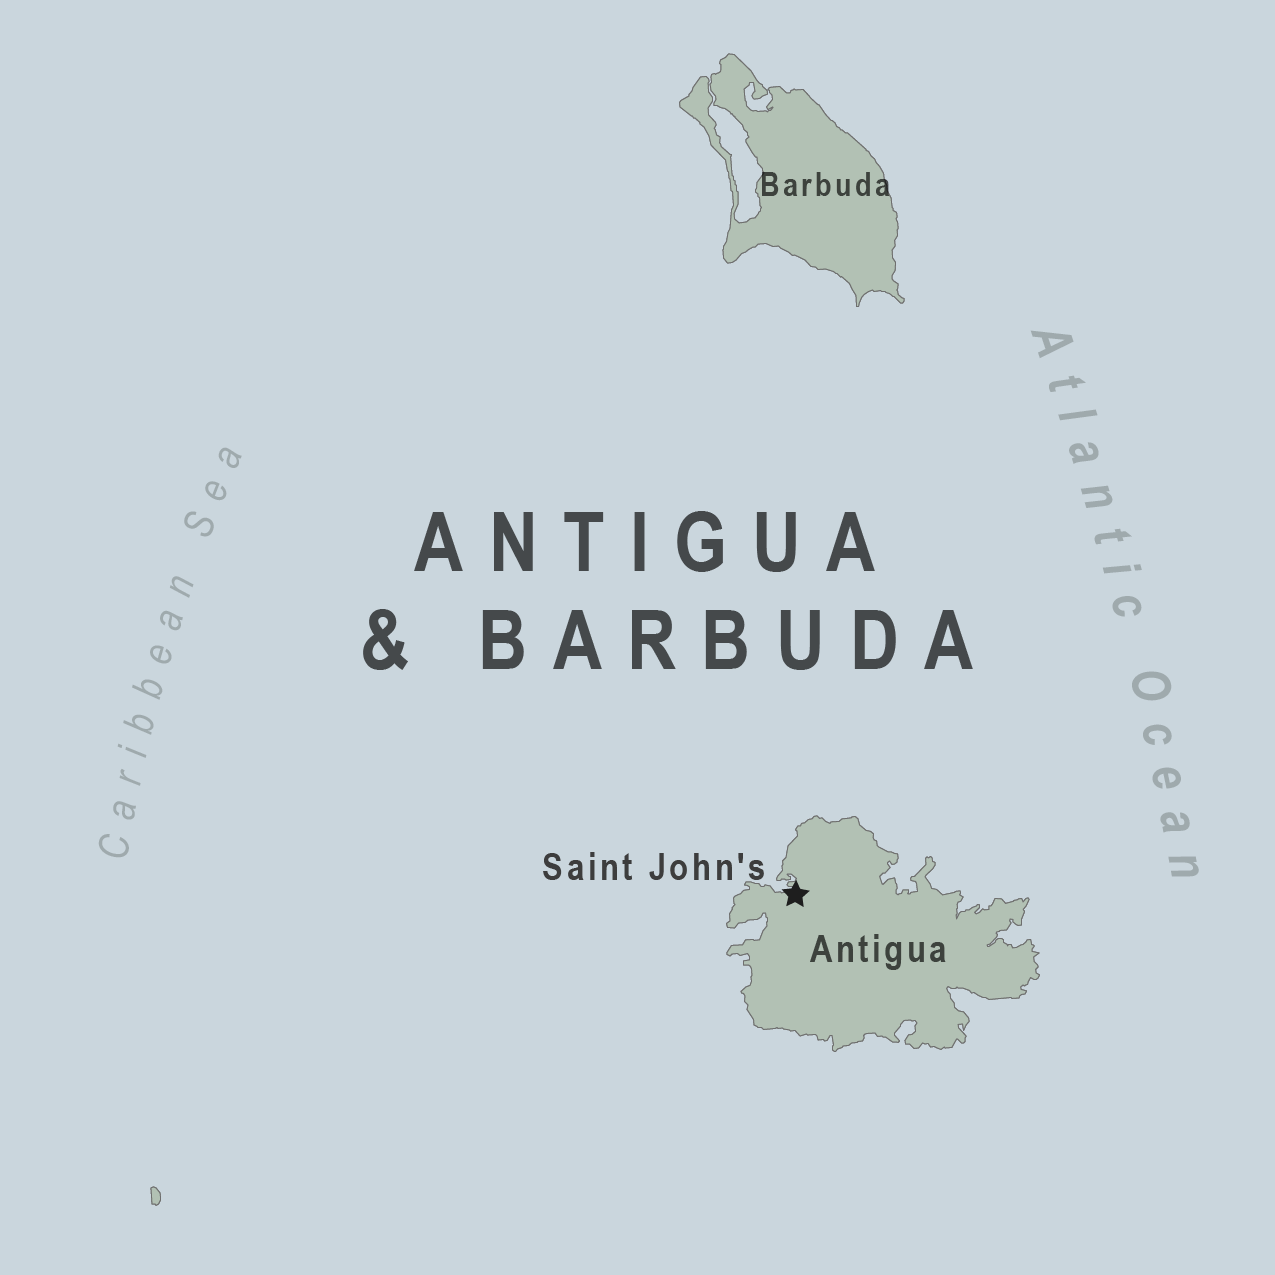 Map - Antigua and Barbuda